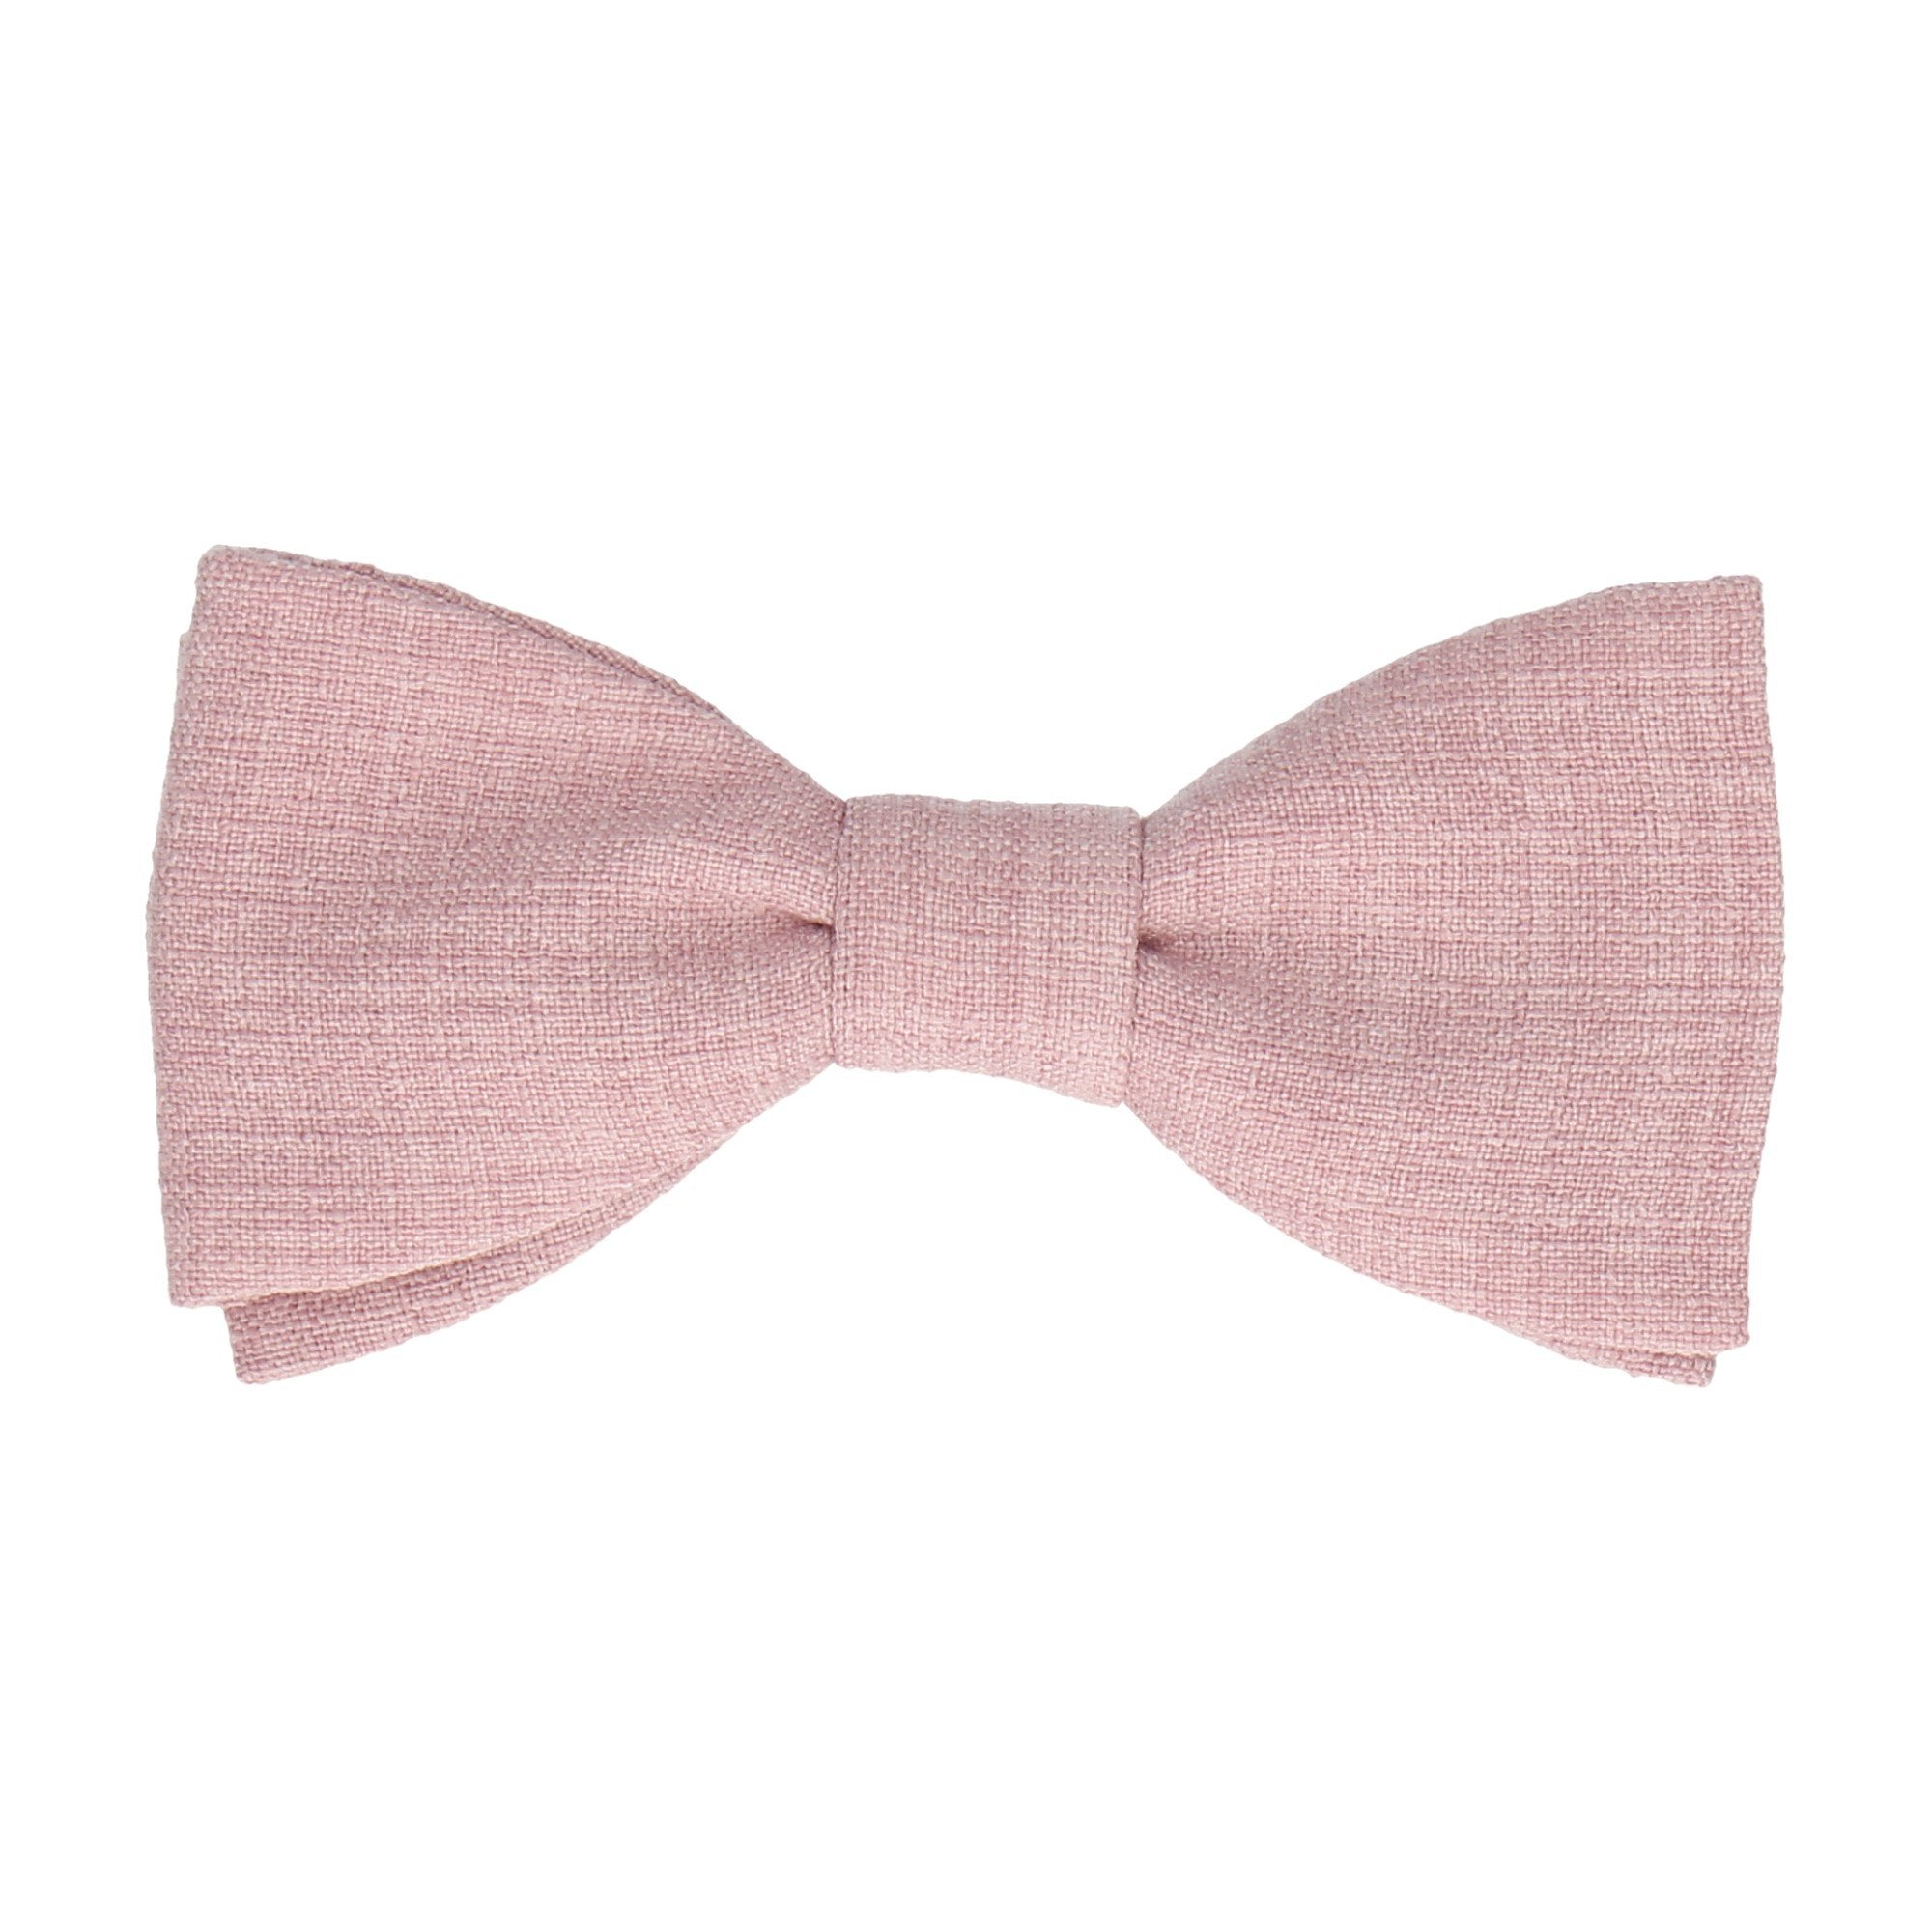 Isaac Pale Pink Bow Tie